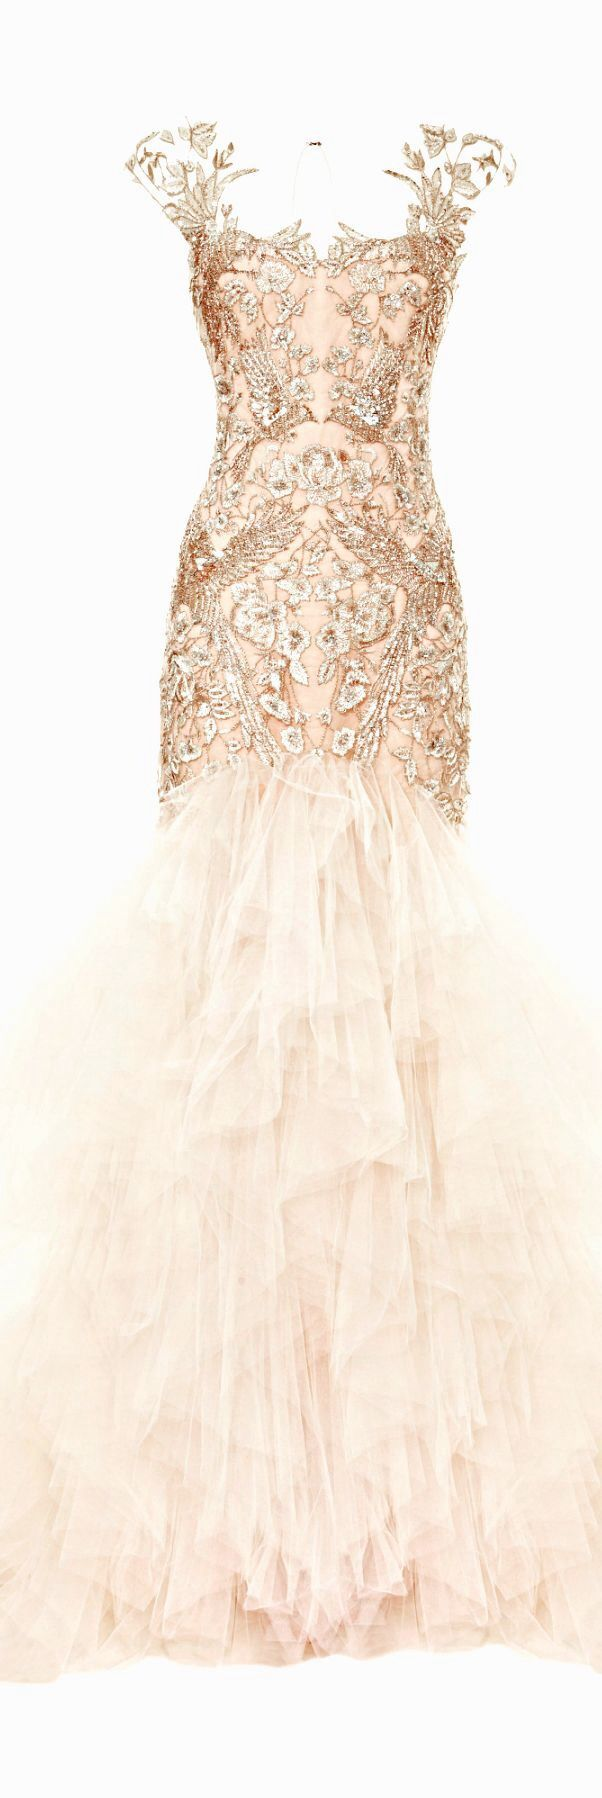 Dolce and Gabana...i so much want this dress!!